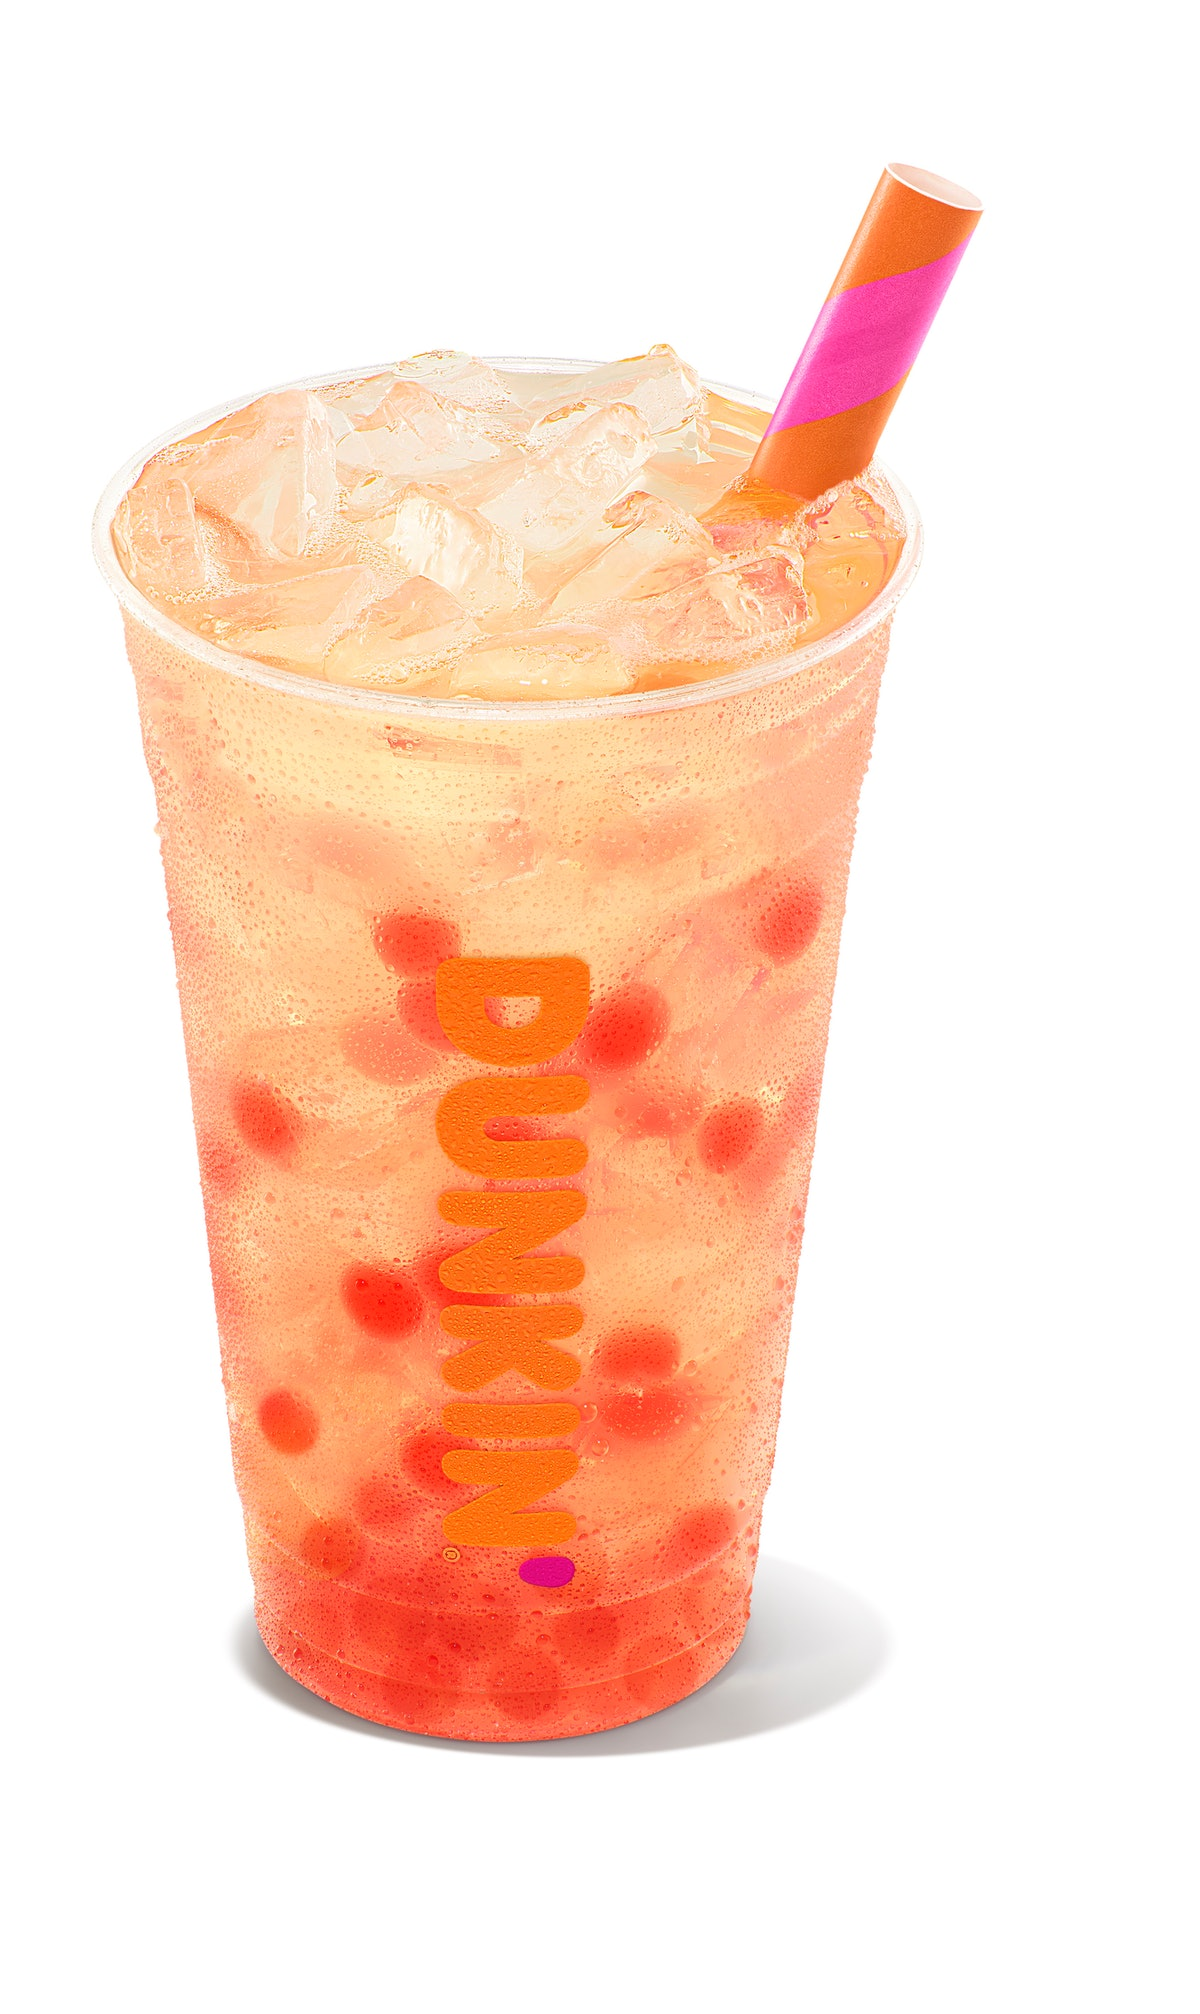 The price of Dunkin's Popping Bubbles won't break the bank.